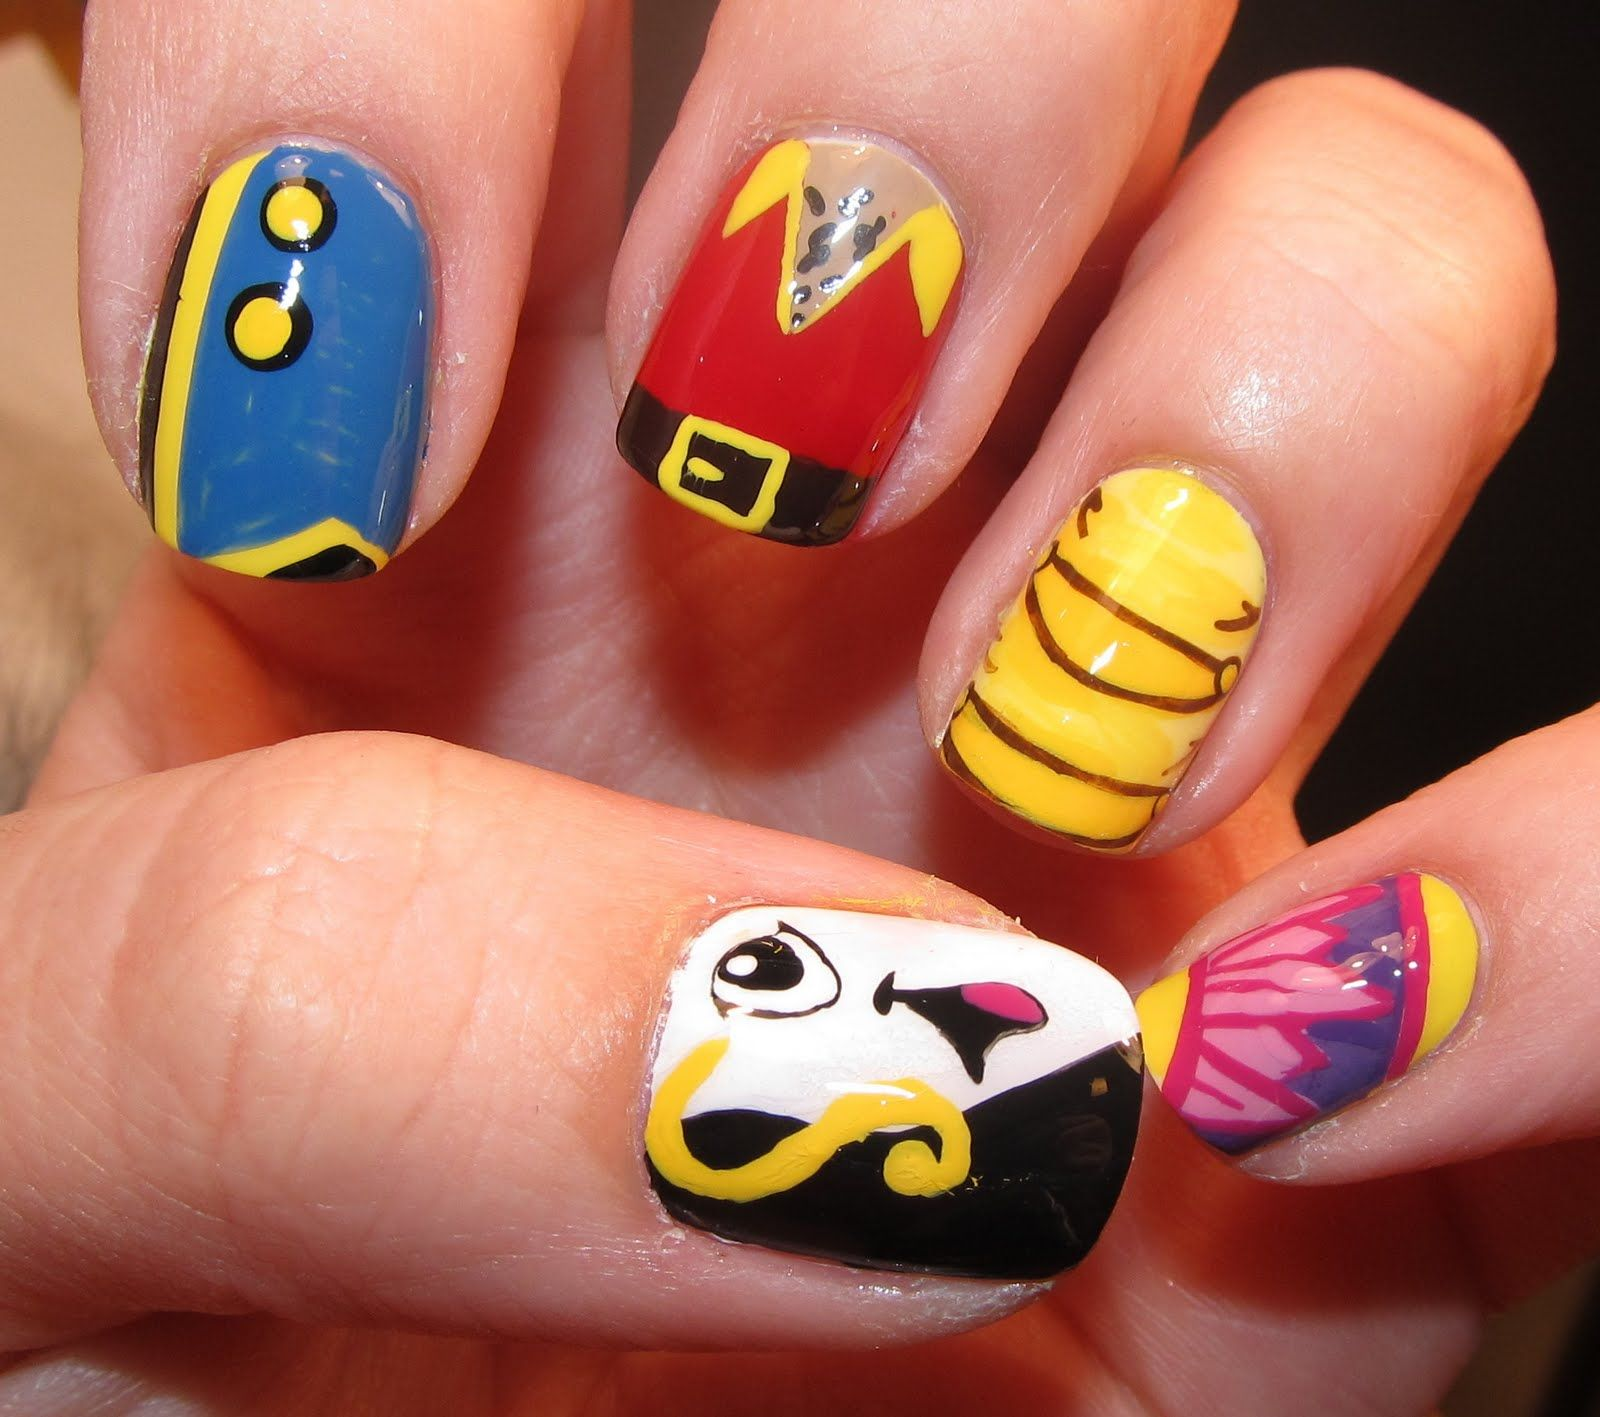 Beauty and the beast nail art nail art pinterest beauty and beauty and the beast nail art prinsesfo Gallery